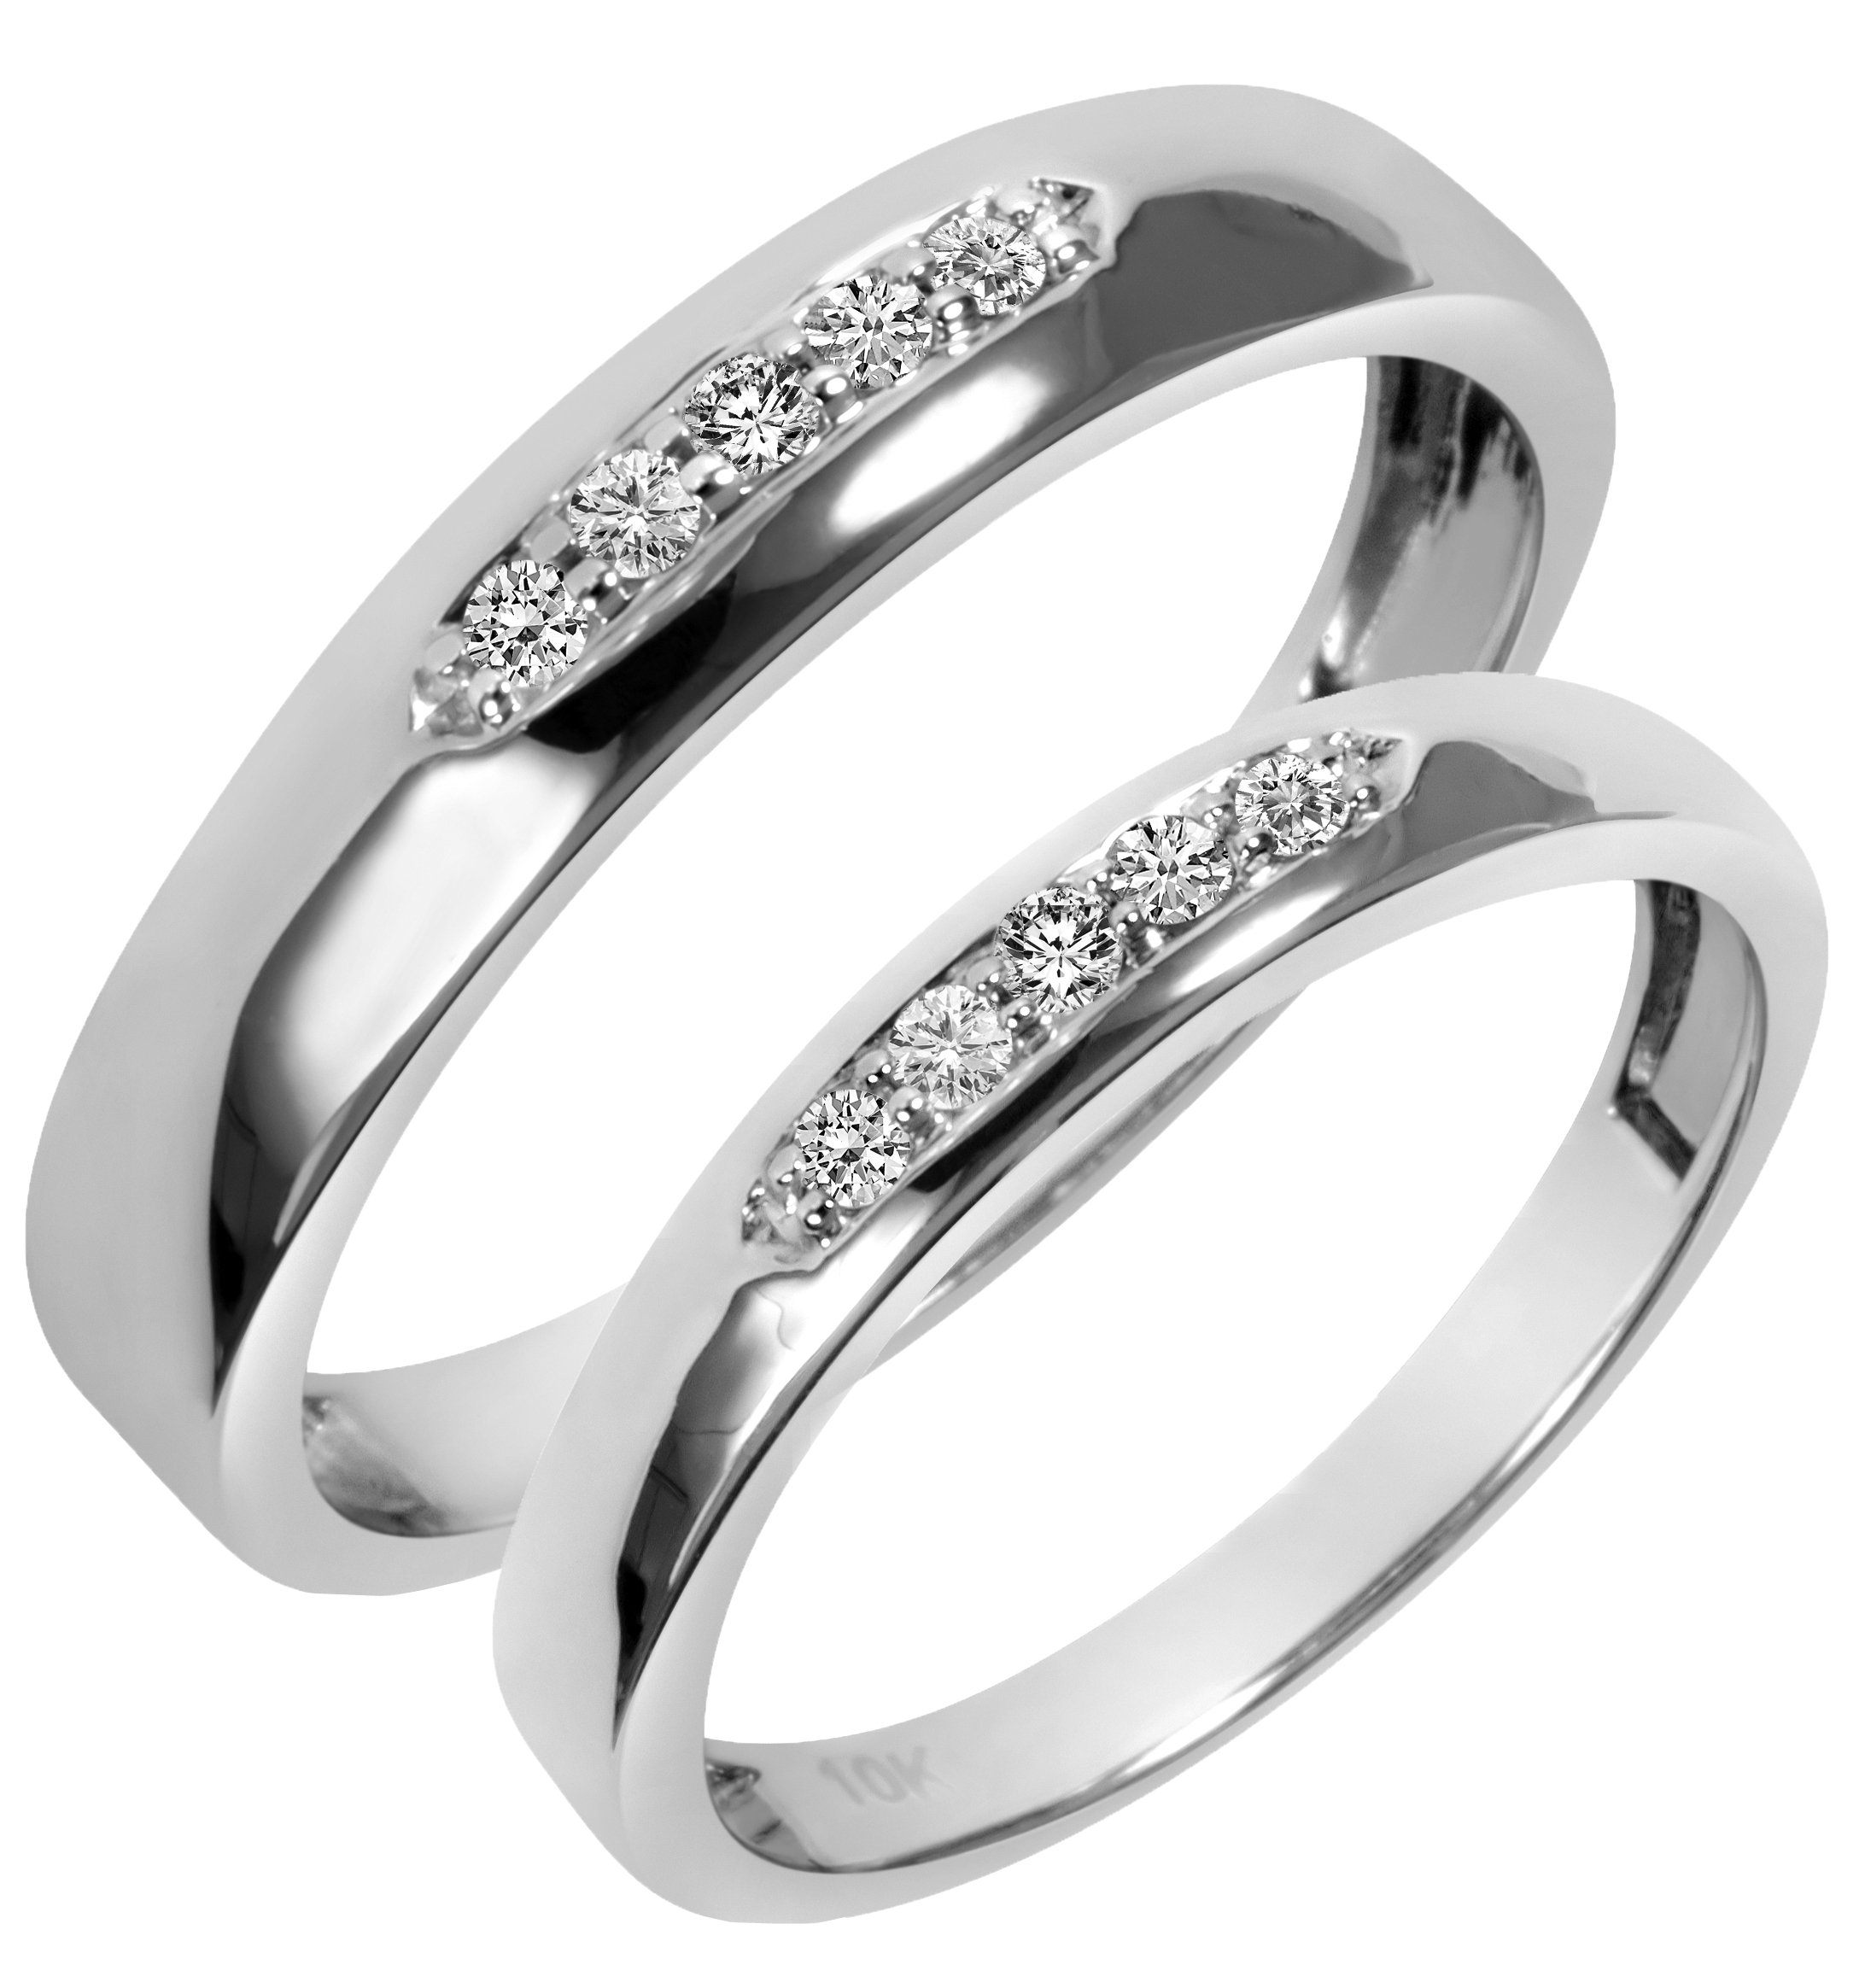 Wedding Band Set